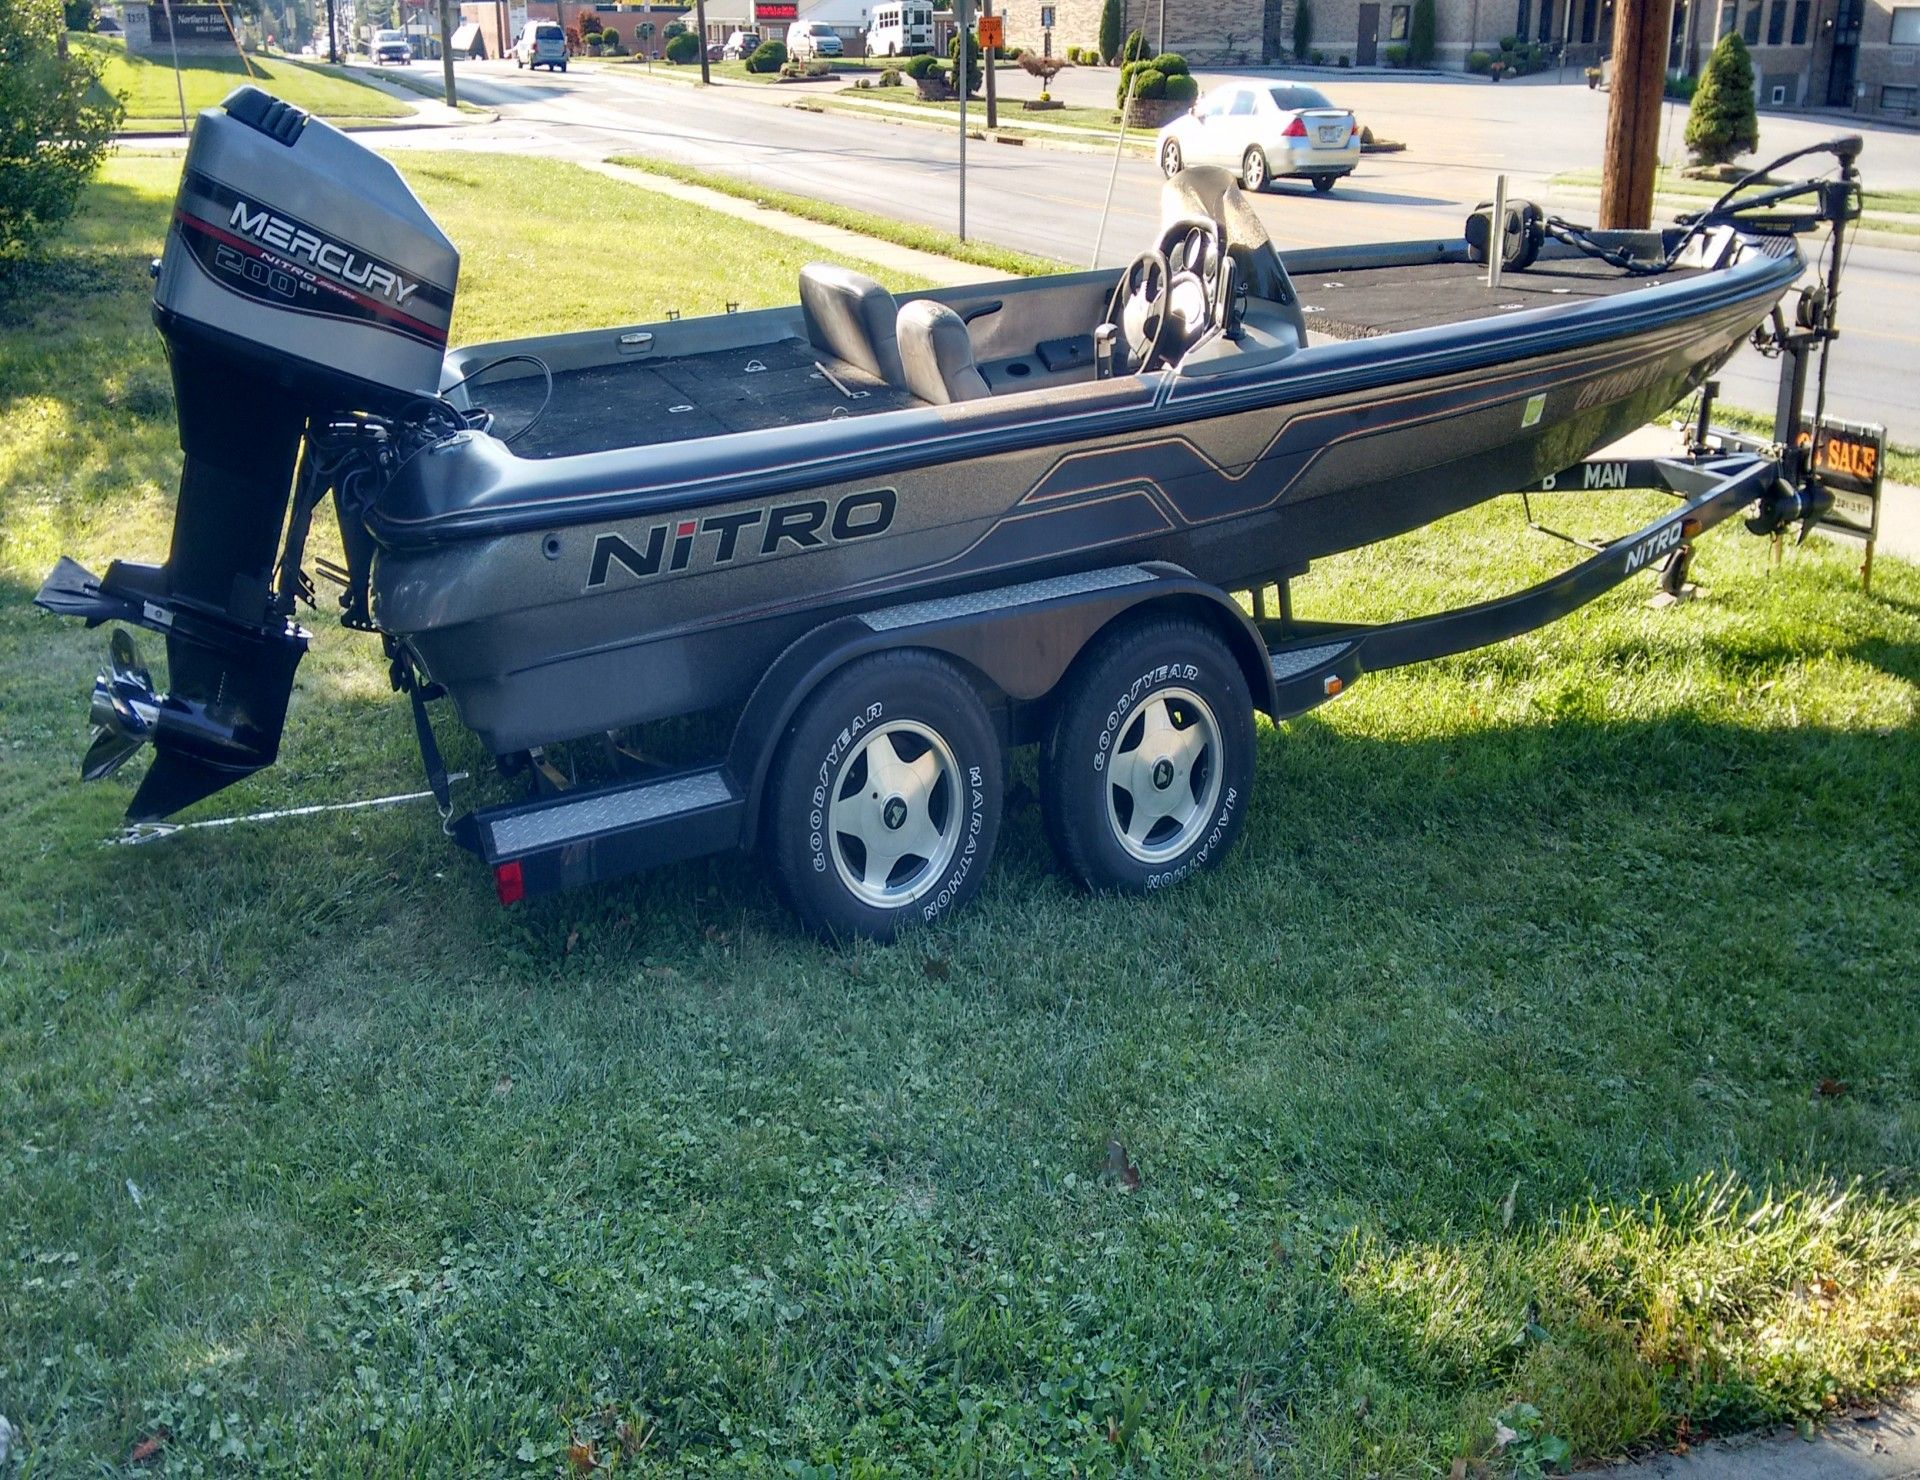 medium resolution of  200 hp mercury efi outboard 2 stroke automatic oil mix 1996 twin axle trailer with swing away tongue surge brakes engine recently serviced with